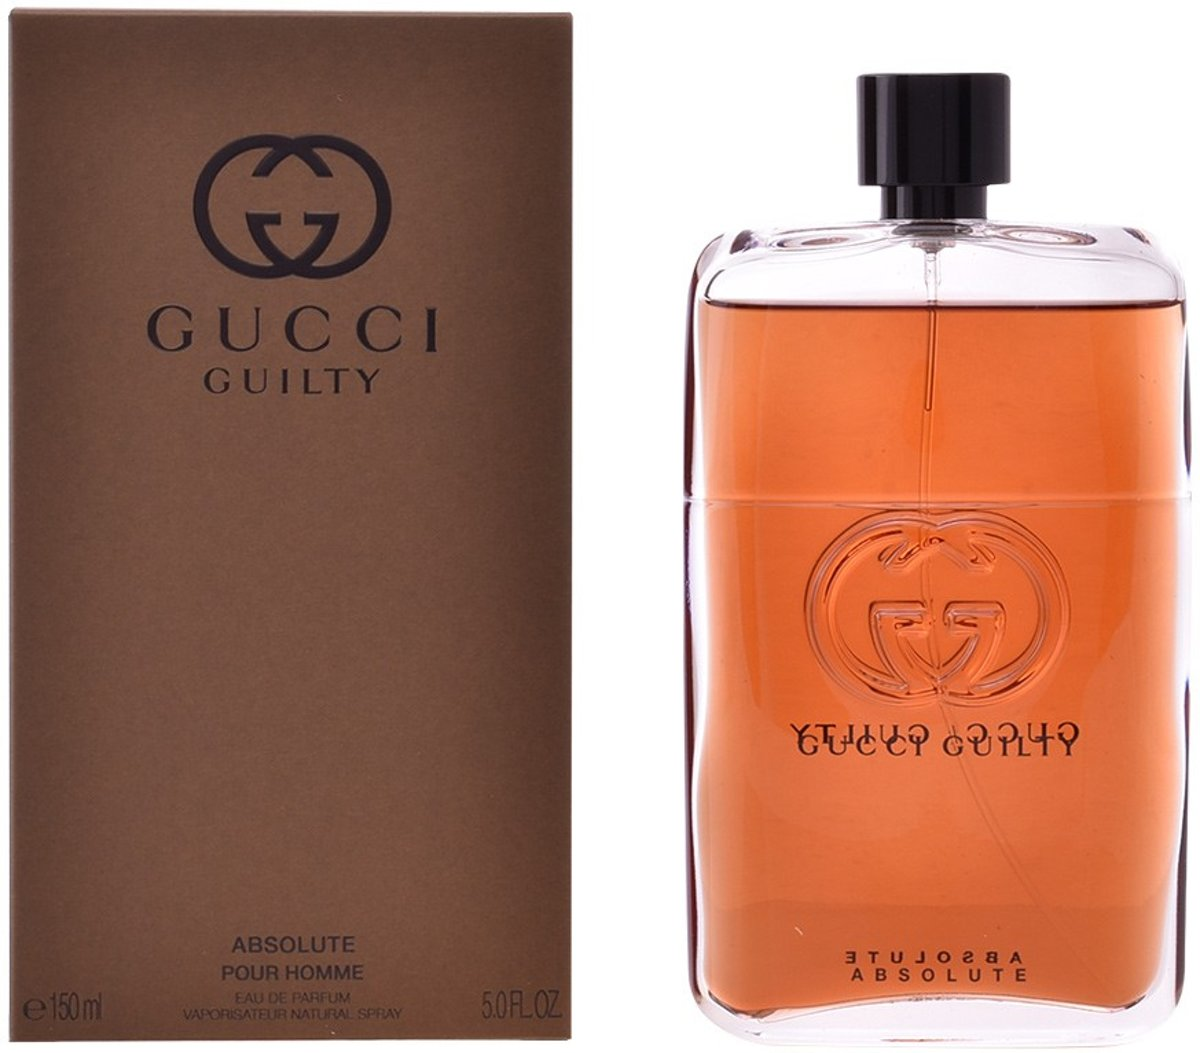 MULTI BUNDEL 2 stuks GUCCI GUILTY ABSOLUTE POUR HOMME Eau de Perfume Spray 150 ml